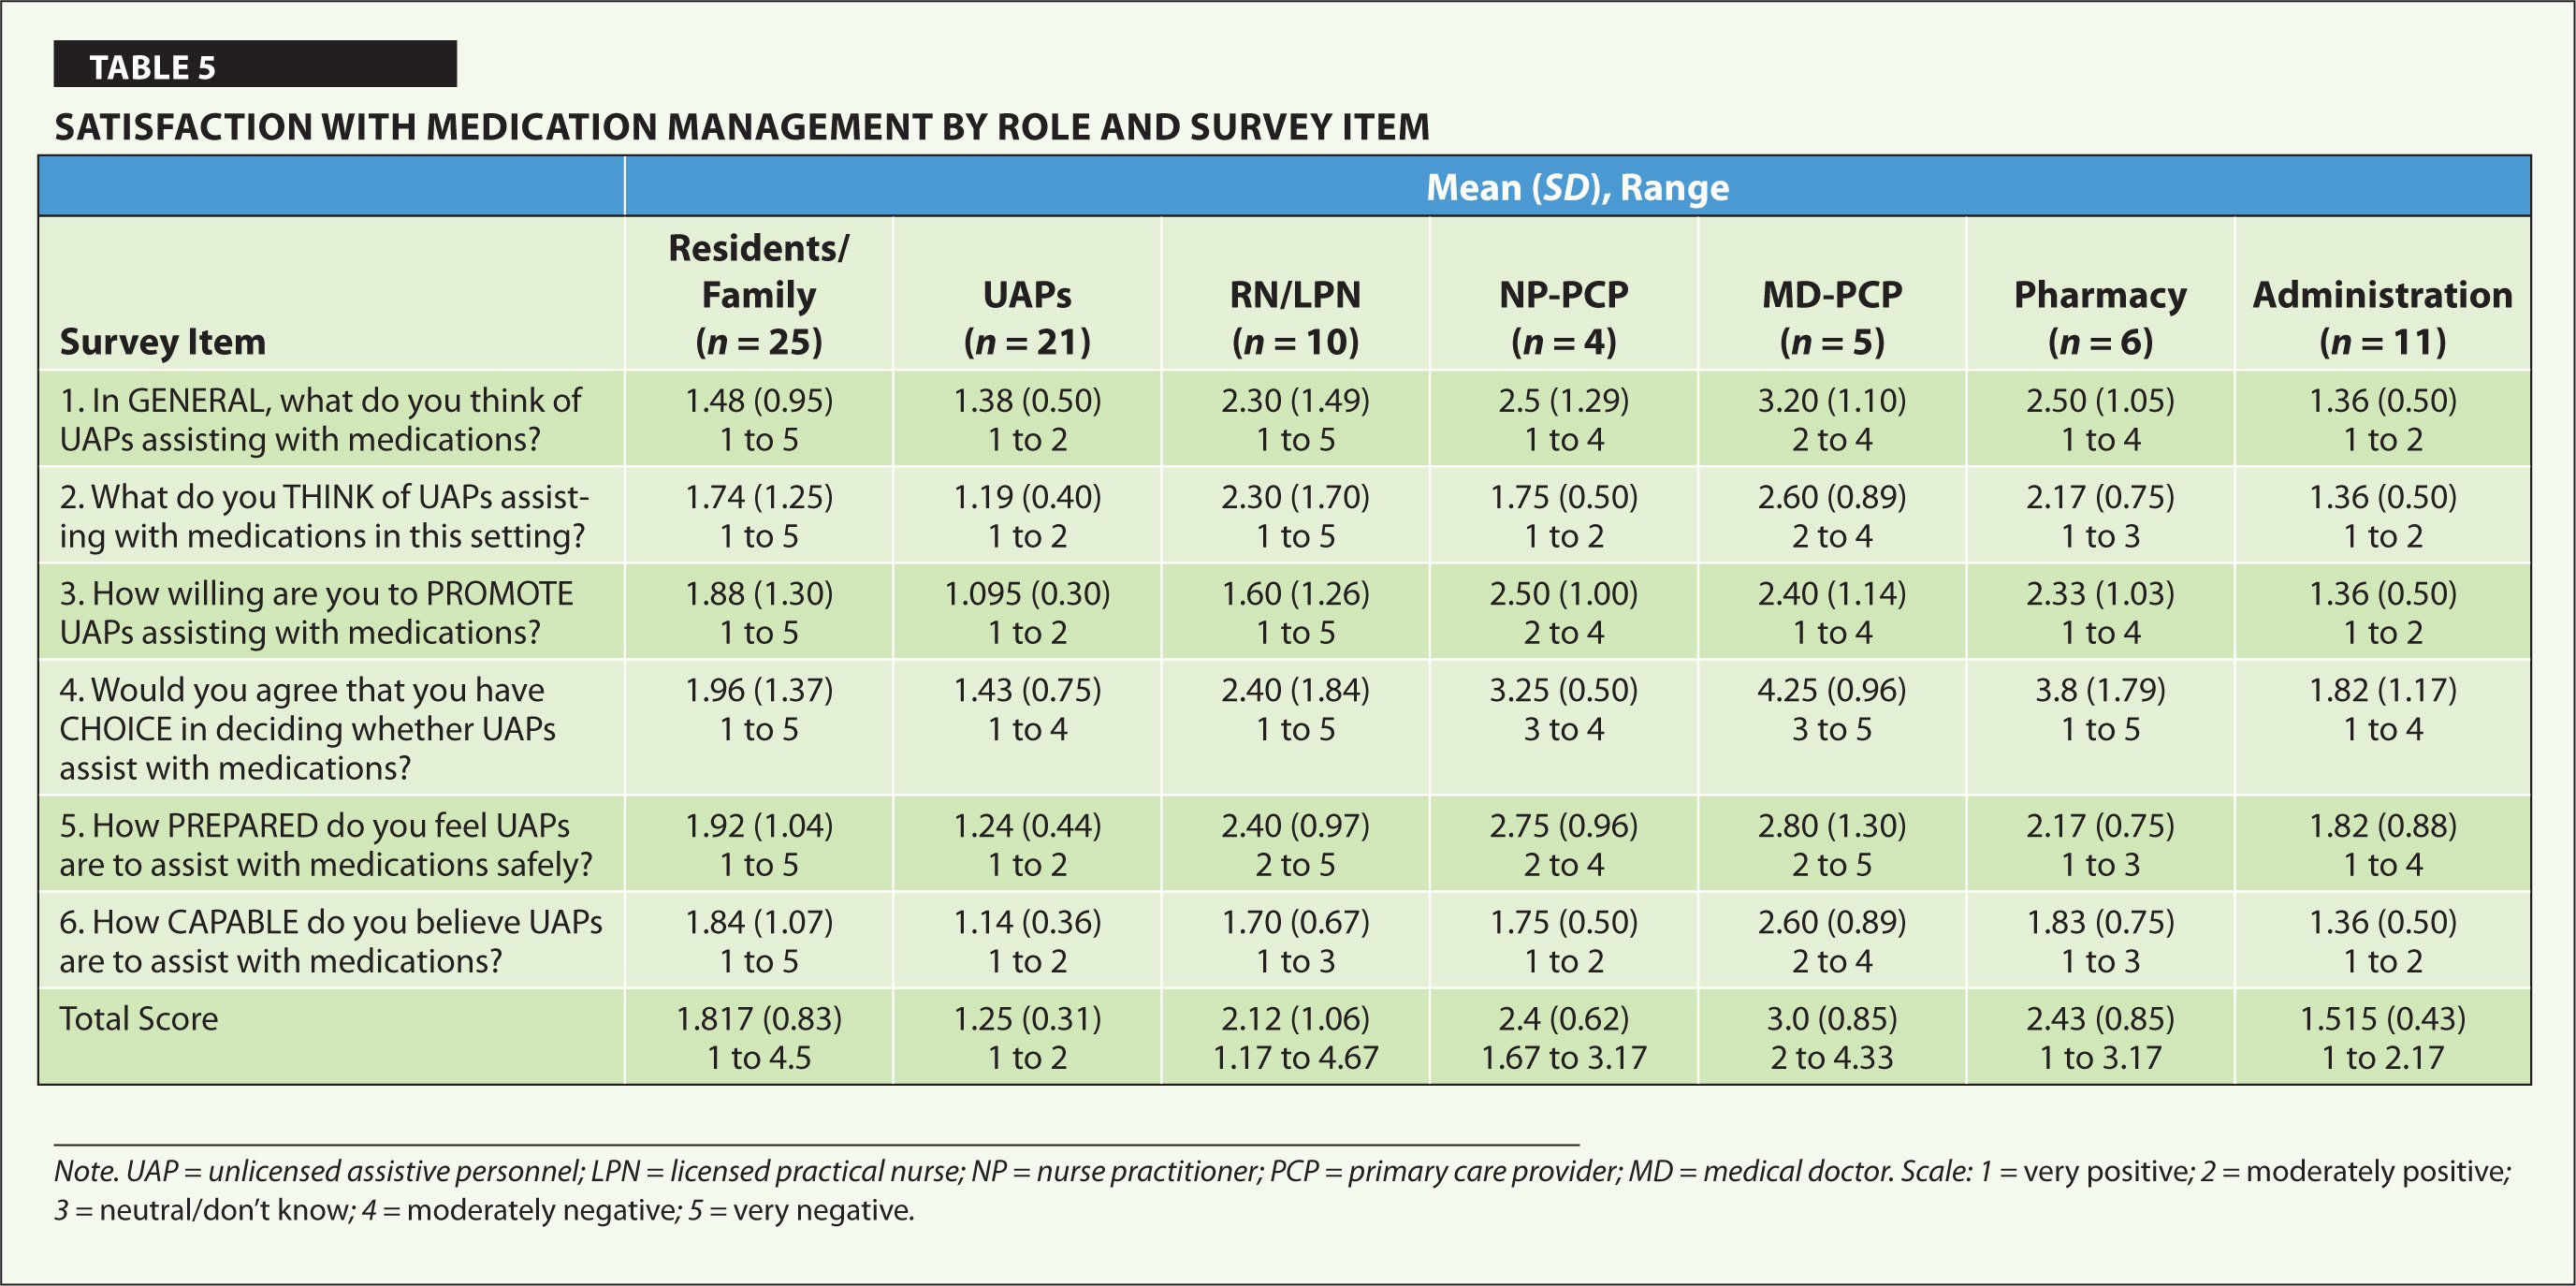 Satisfaction with Medication Management by Role and Survey Item